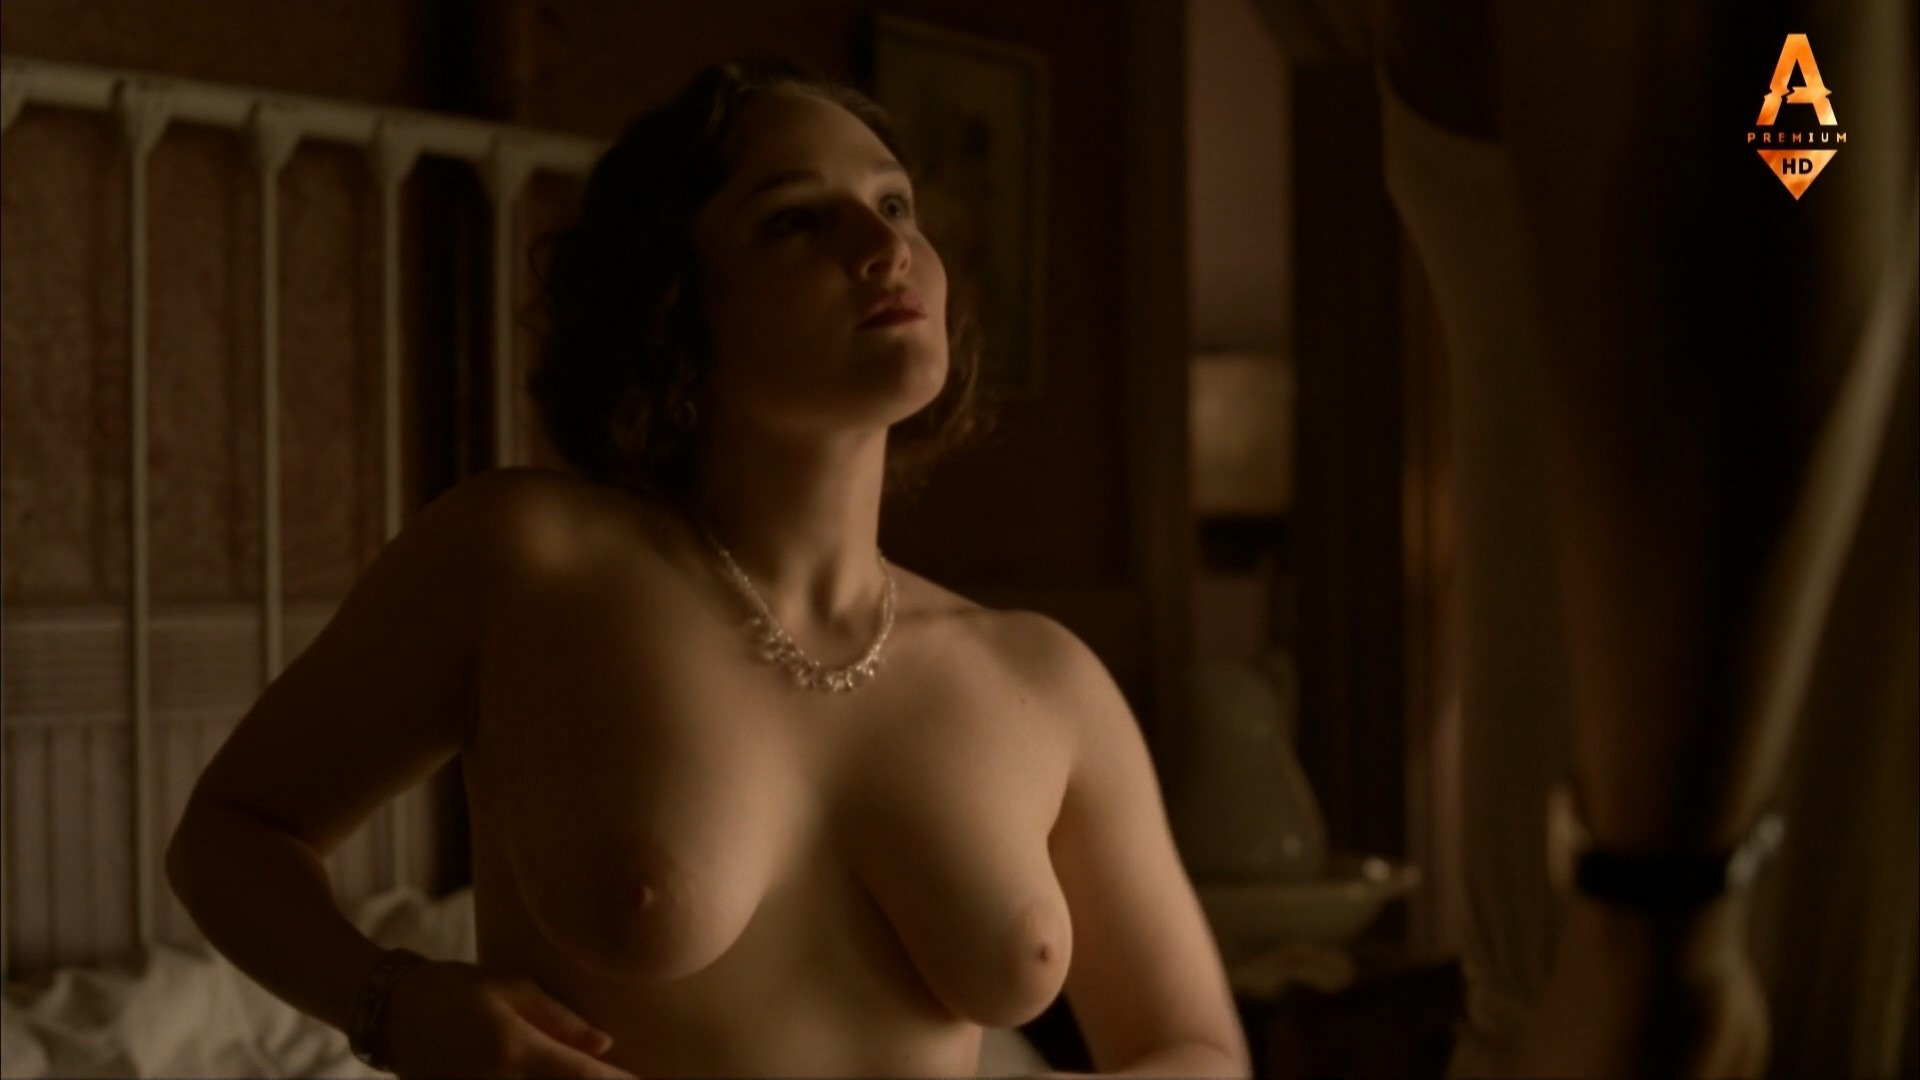 Jo Armeniox – Boardwalk Empire s04e01 (2013) HD 1080p